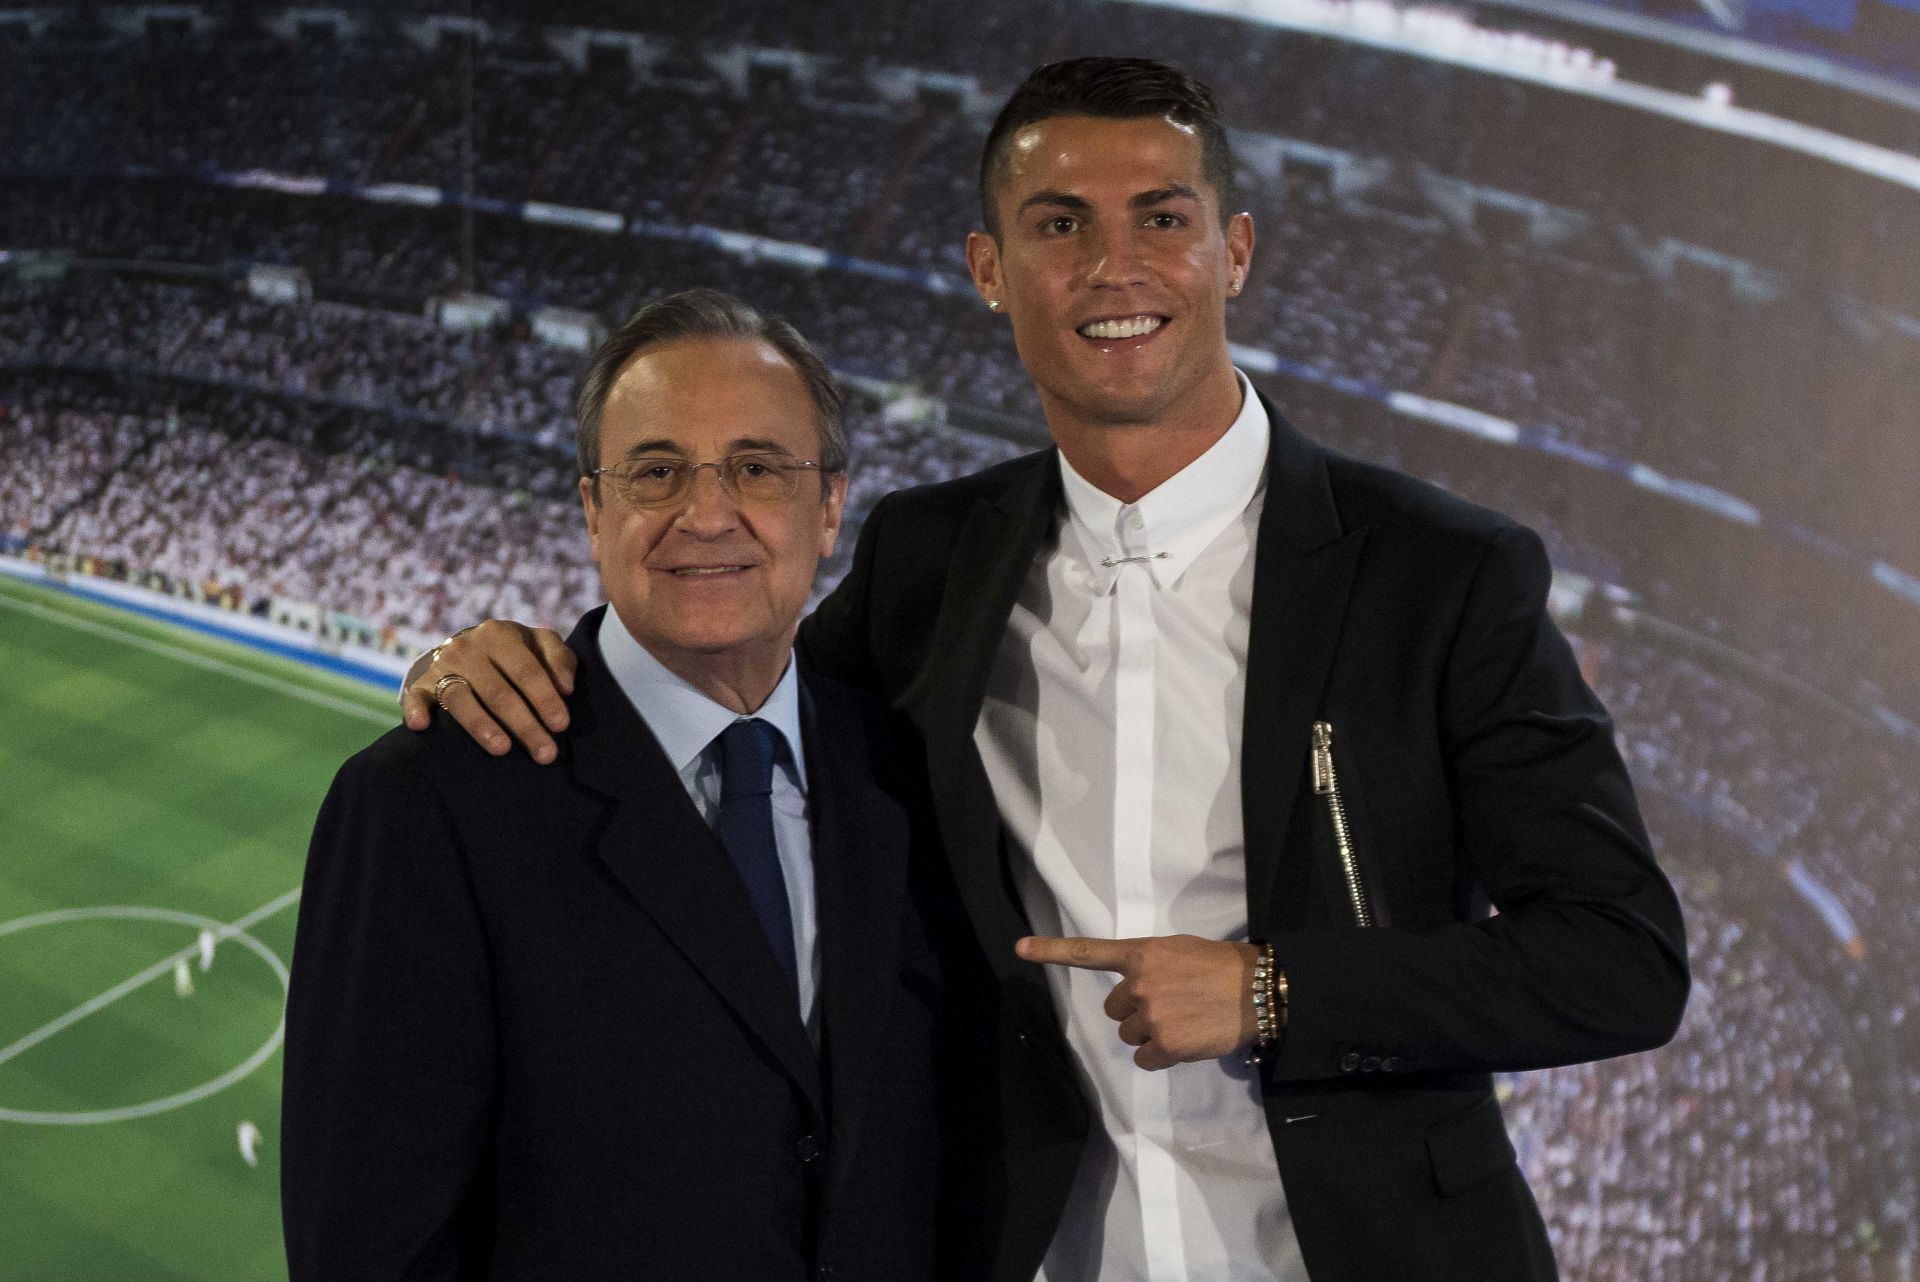 Cristiano Ronaldo Renews Contract With Real Madrid Until 2021 - Spain